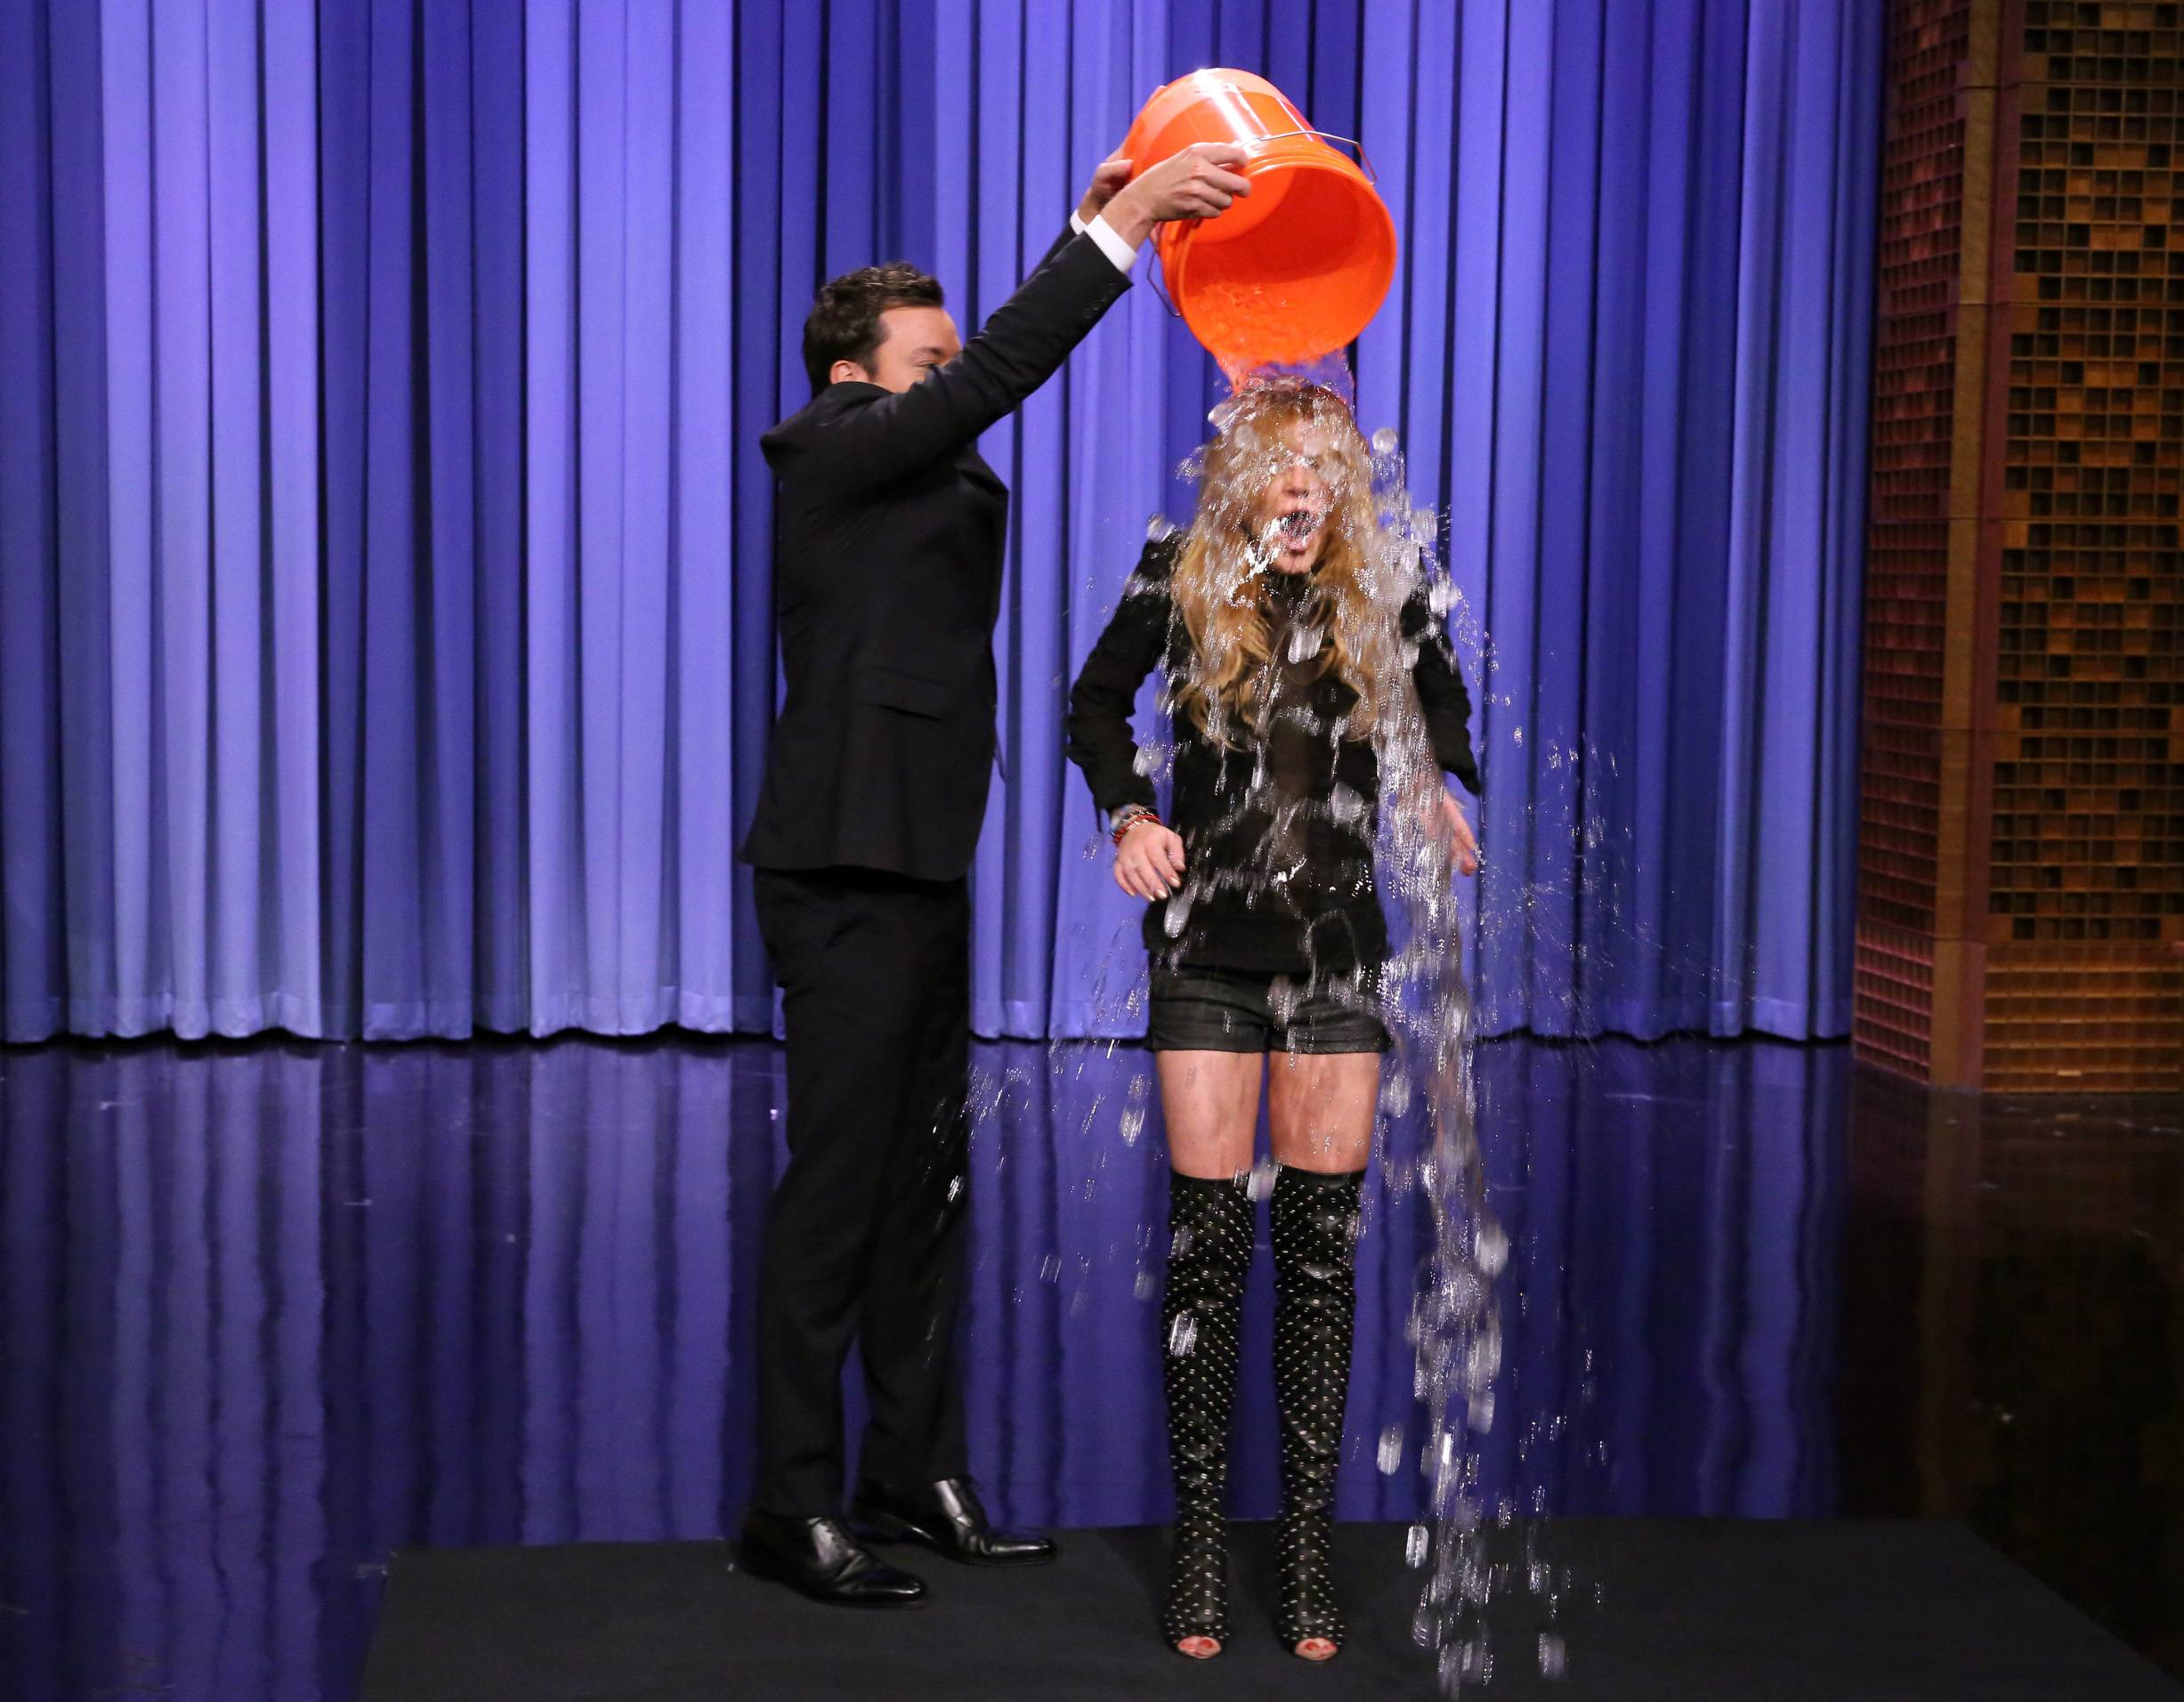 "Jimmy Fallon dumps a bucket of ice water over the head of actress Lindsay Lohan as she participates in the ALS Ice Bucket Challenge on ""The Tonight Show Starring Jimmy Fallon."" The phenomenal success of the fundraising craze is making charitable organizations rethink how they connect with a younger generation of potential donors, specifically through social media."